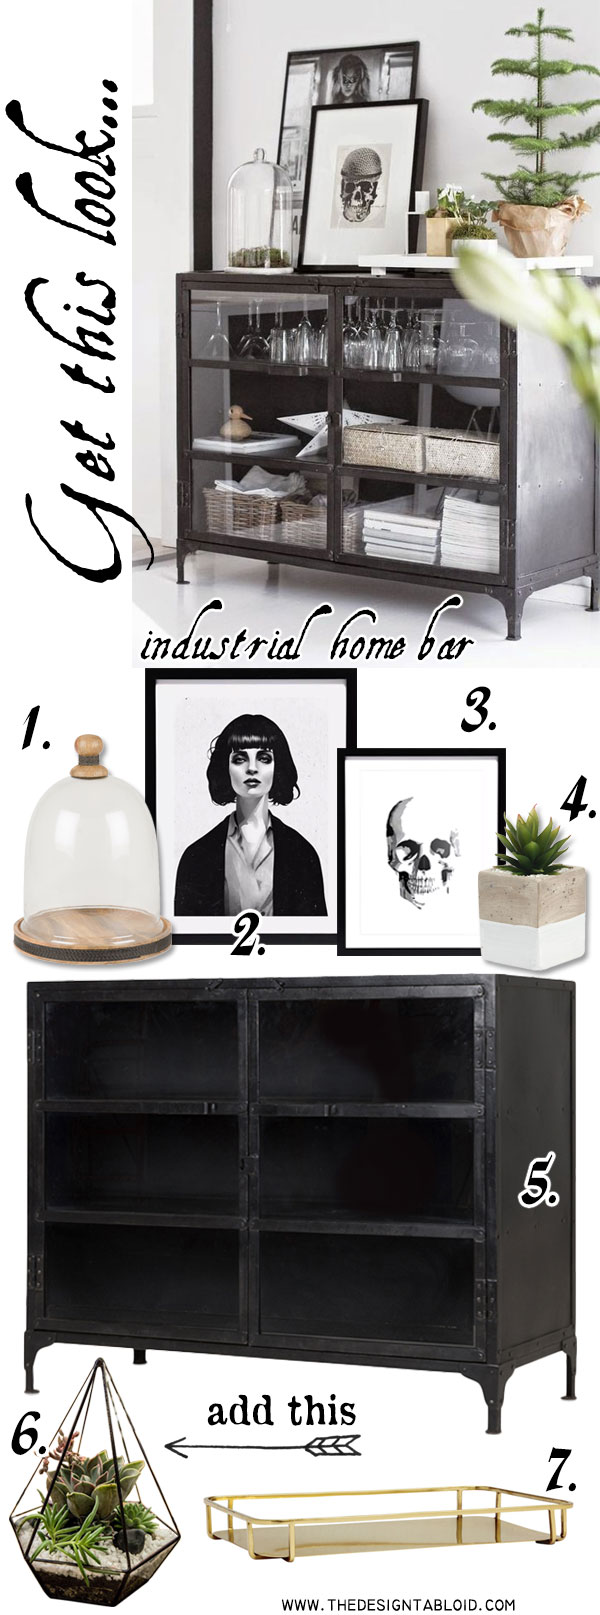 Get The Look: Industrial Home Bar